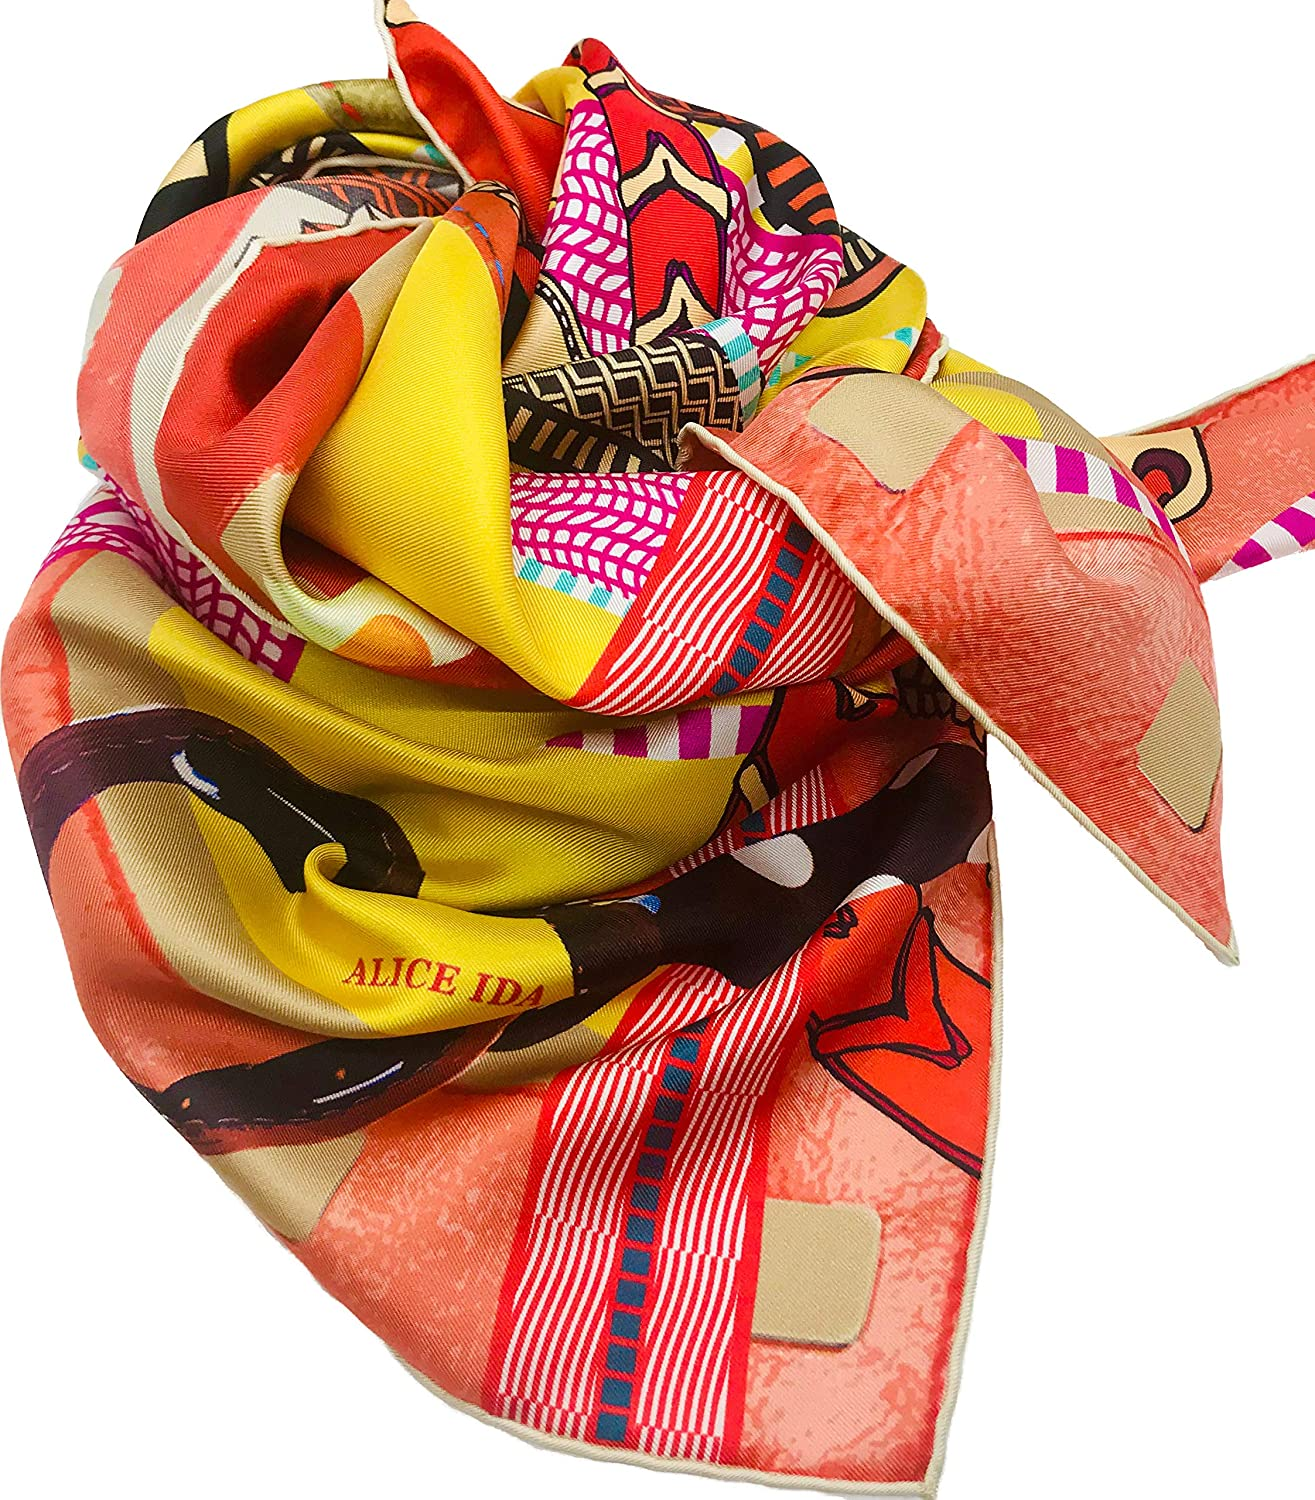 ALICE IDA La Maison- Silk Scarf for Women's Luxury Fashion Twill Scarves Hand Rolled Made in France with Elegant Gift Box